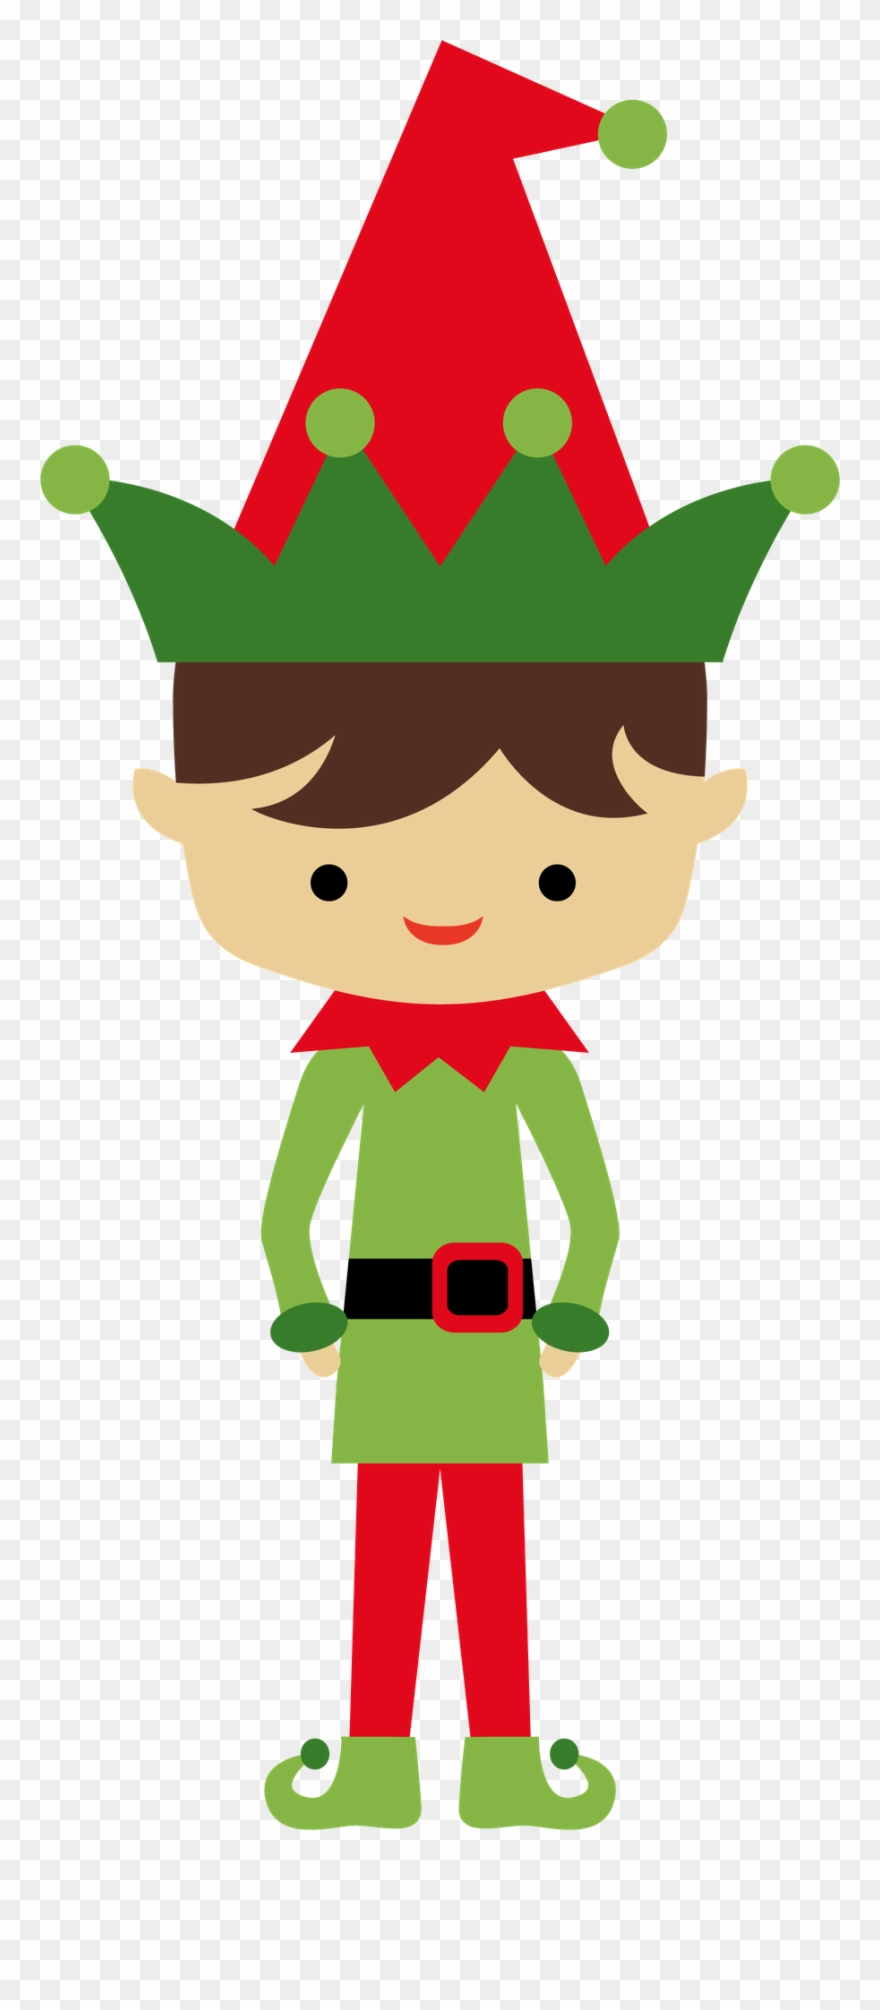 Christmas Elf Clip Art Christmas Templates, Christmas.